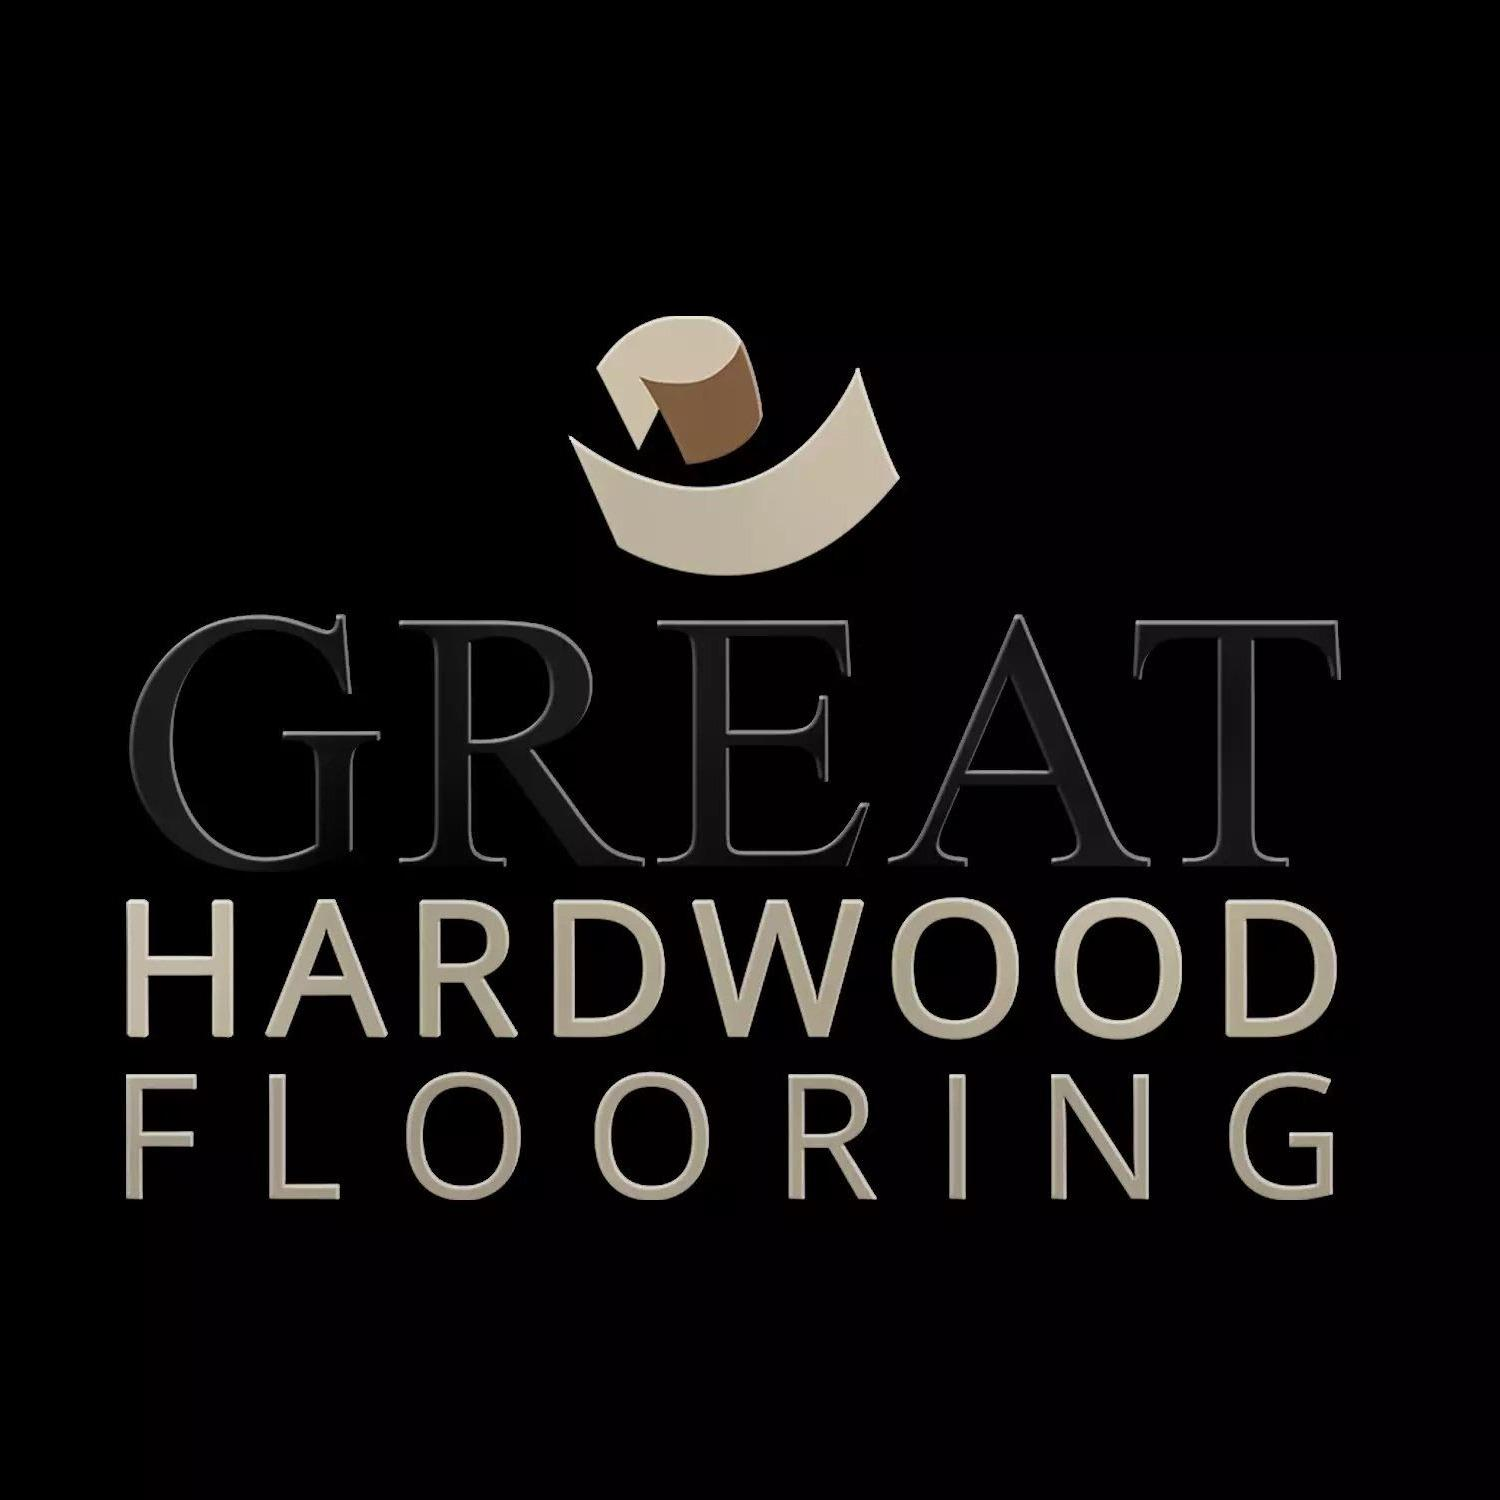 Great Hardwood Flooring Services, Inc